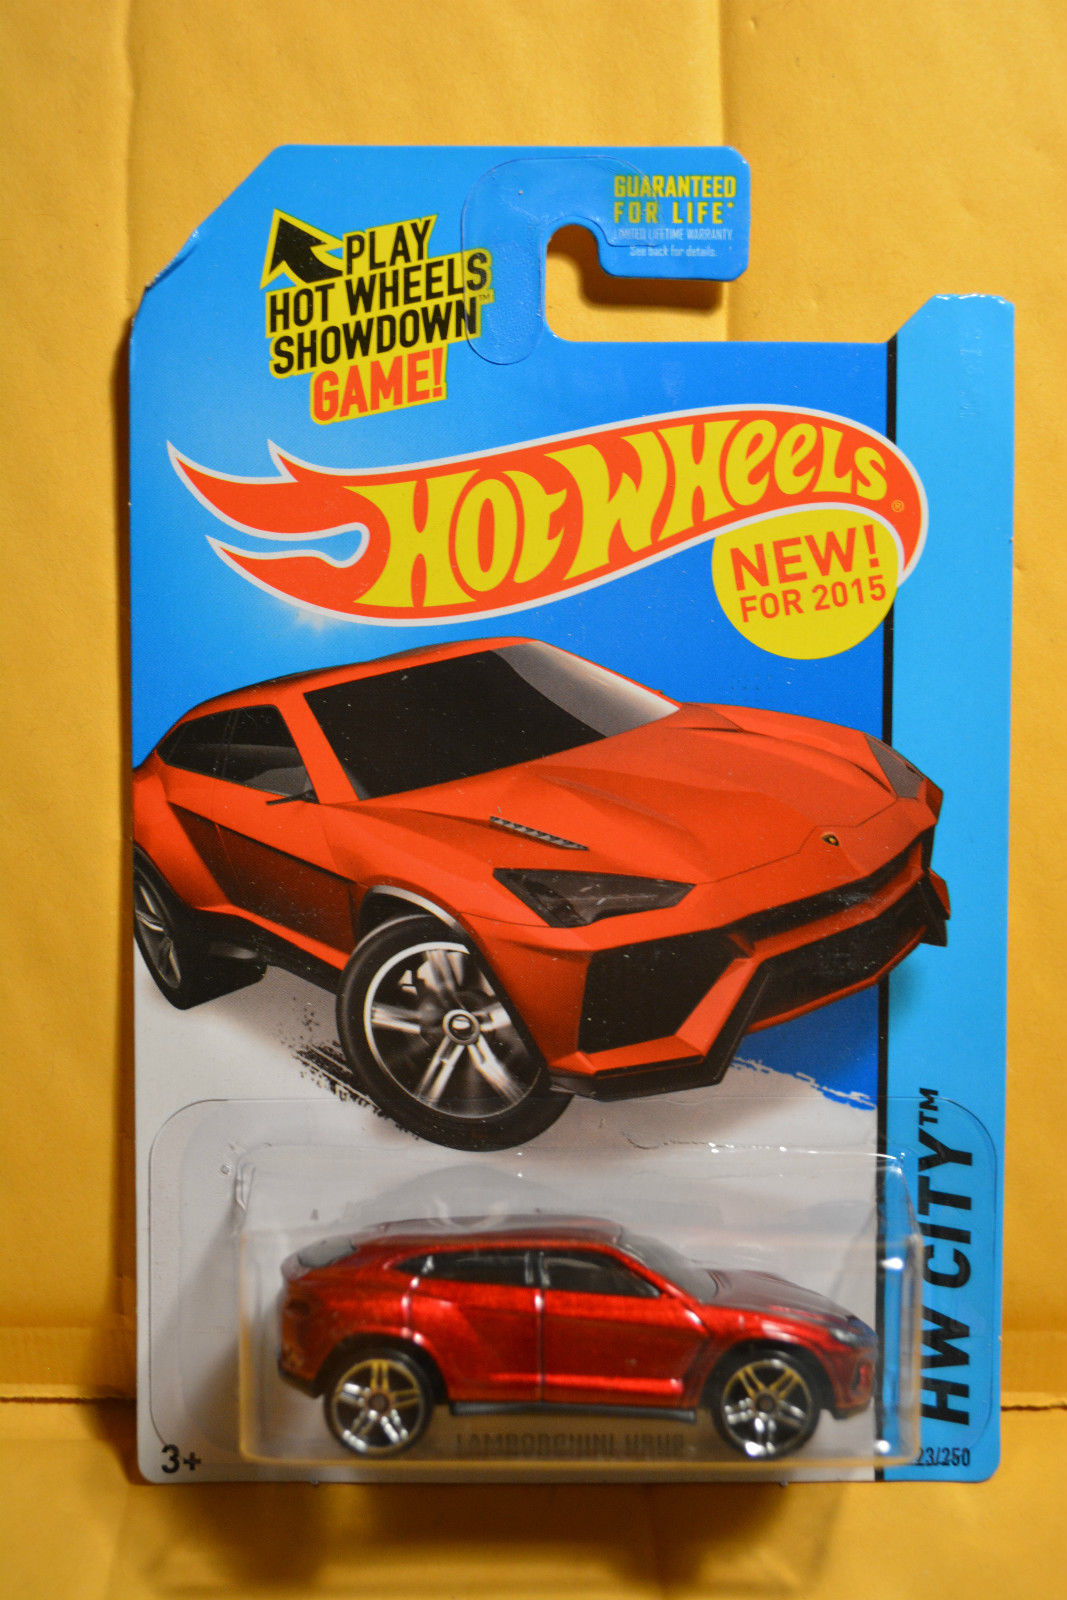 2015 023 hall 39 s guide for hot wheels collectors. Black Bedroom Furniture Sets. Home Design Ideas